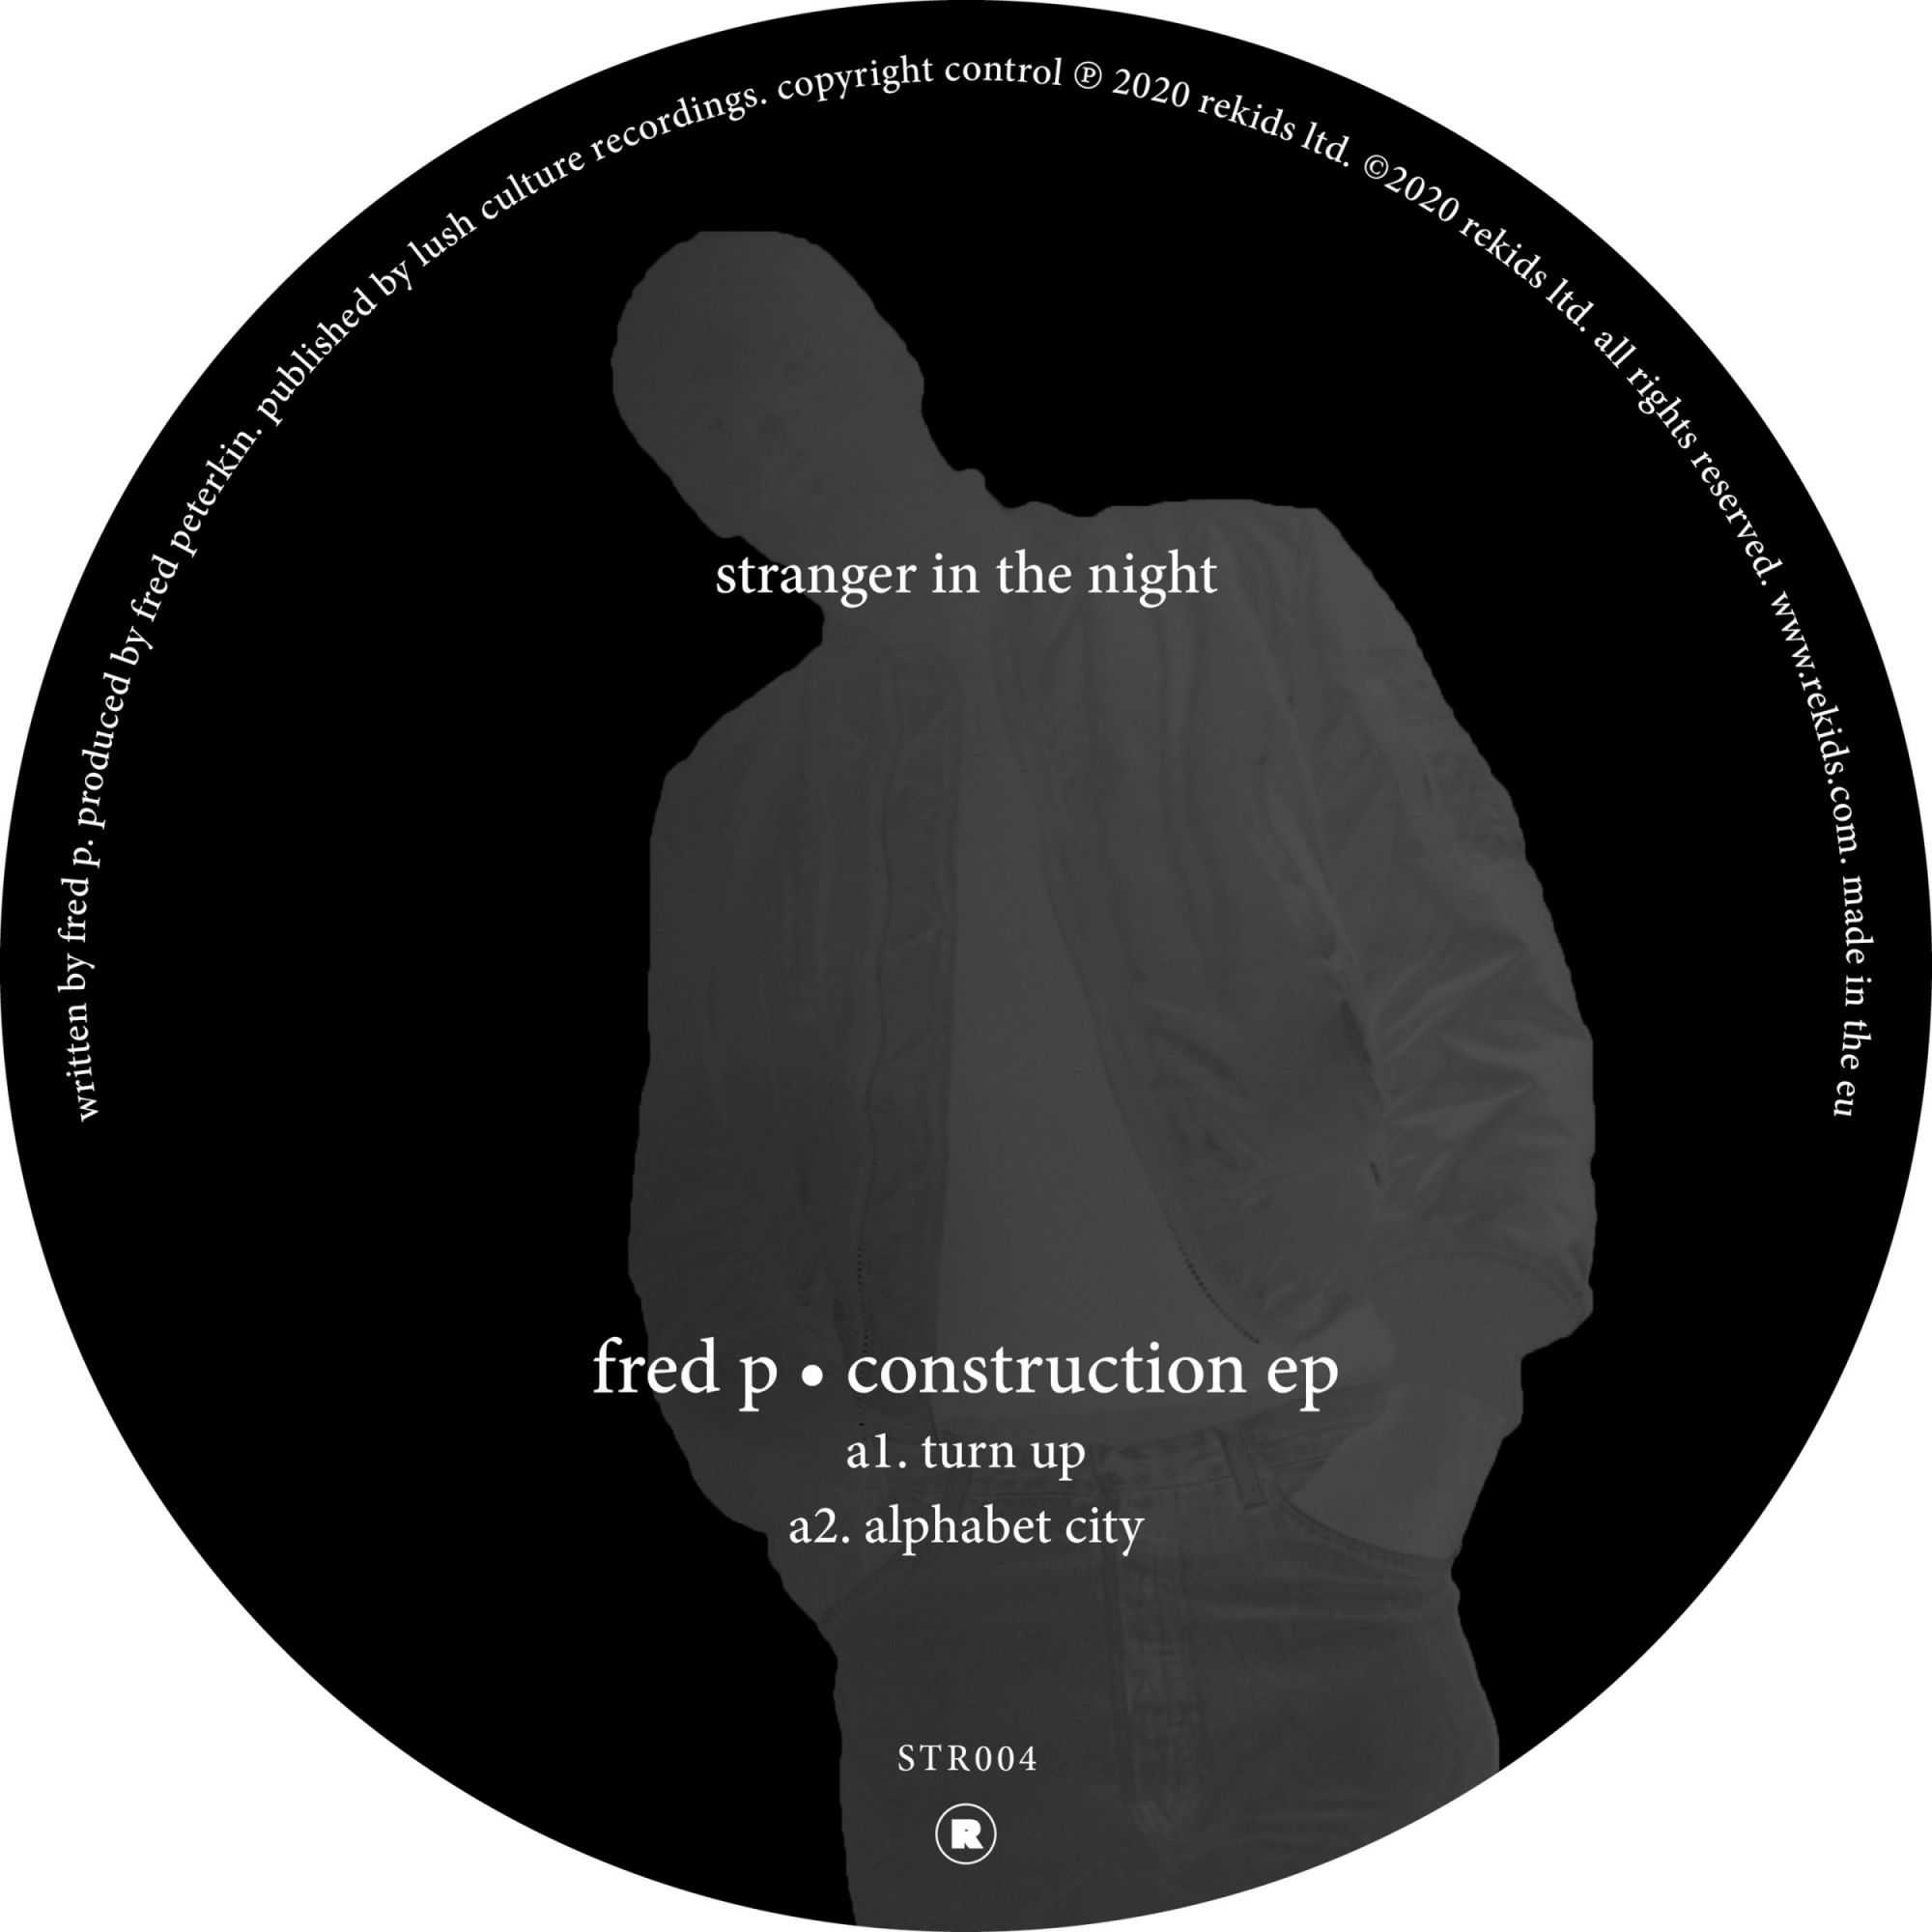 Fred P - Construction EP